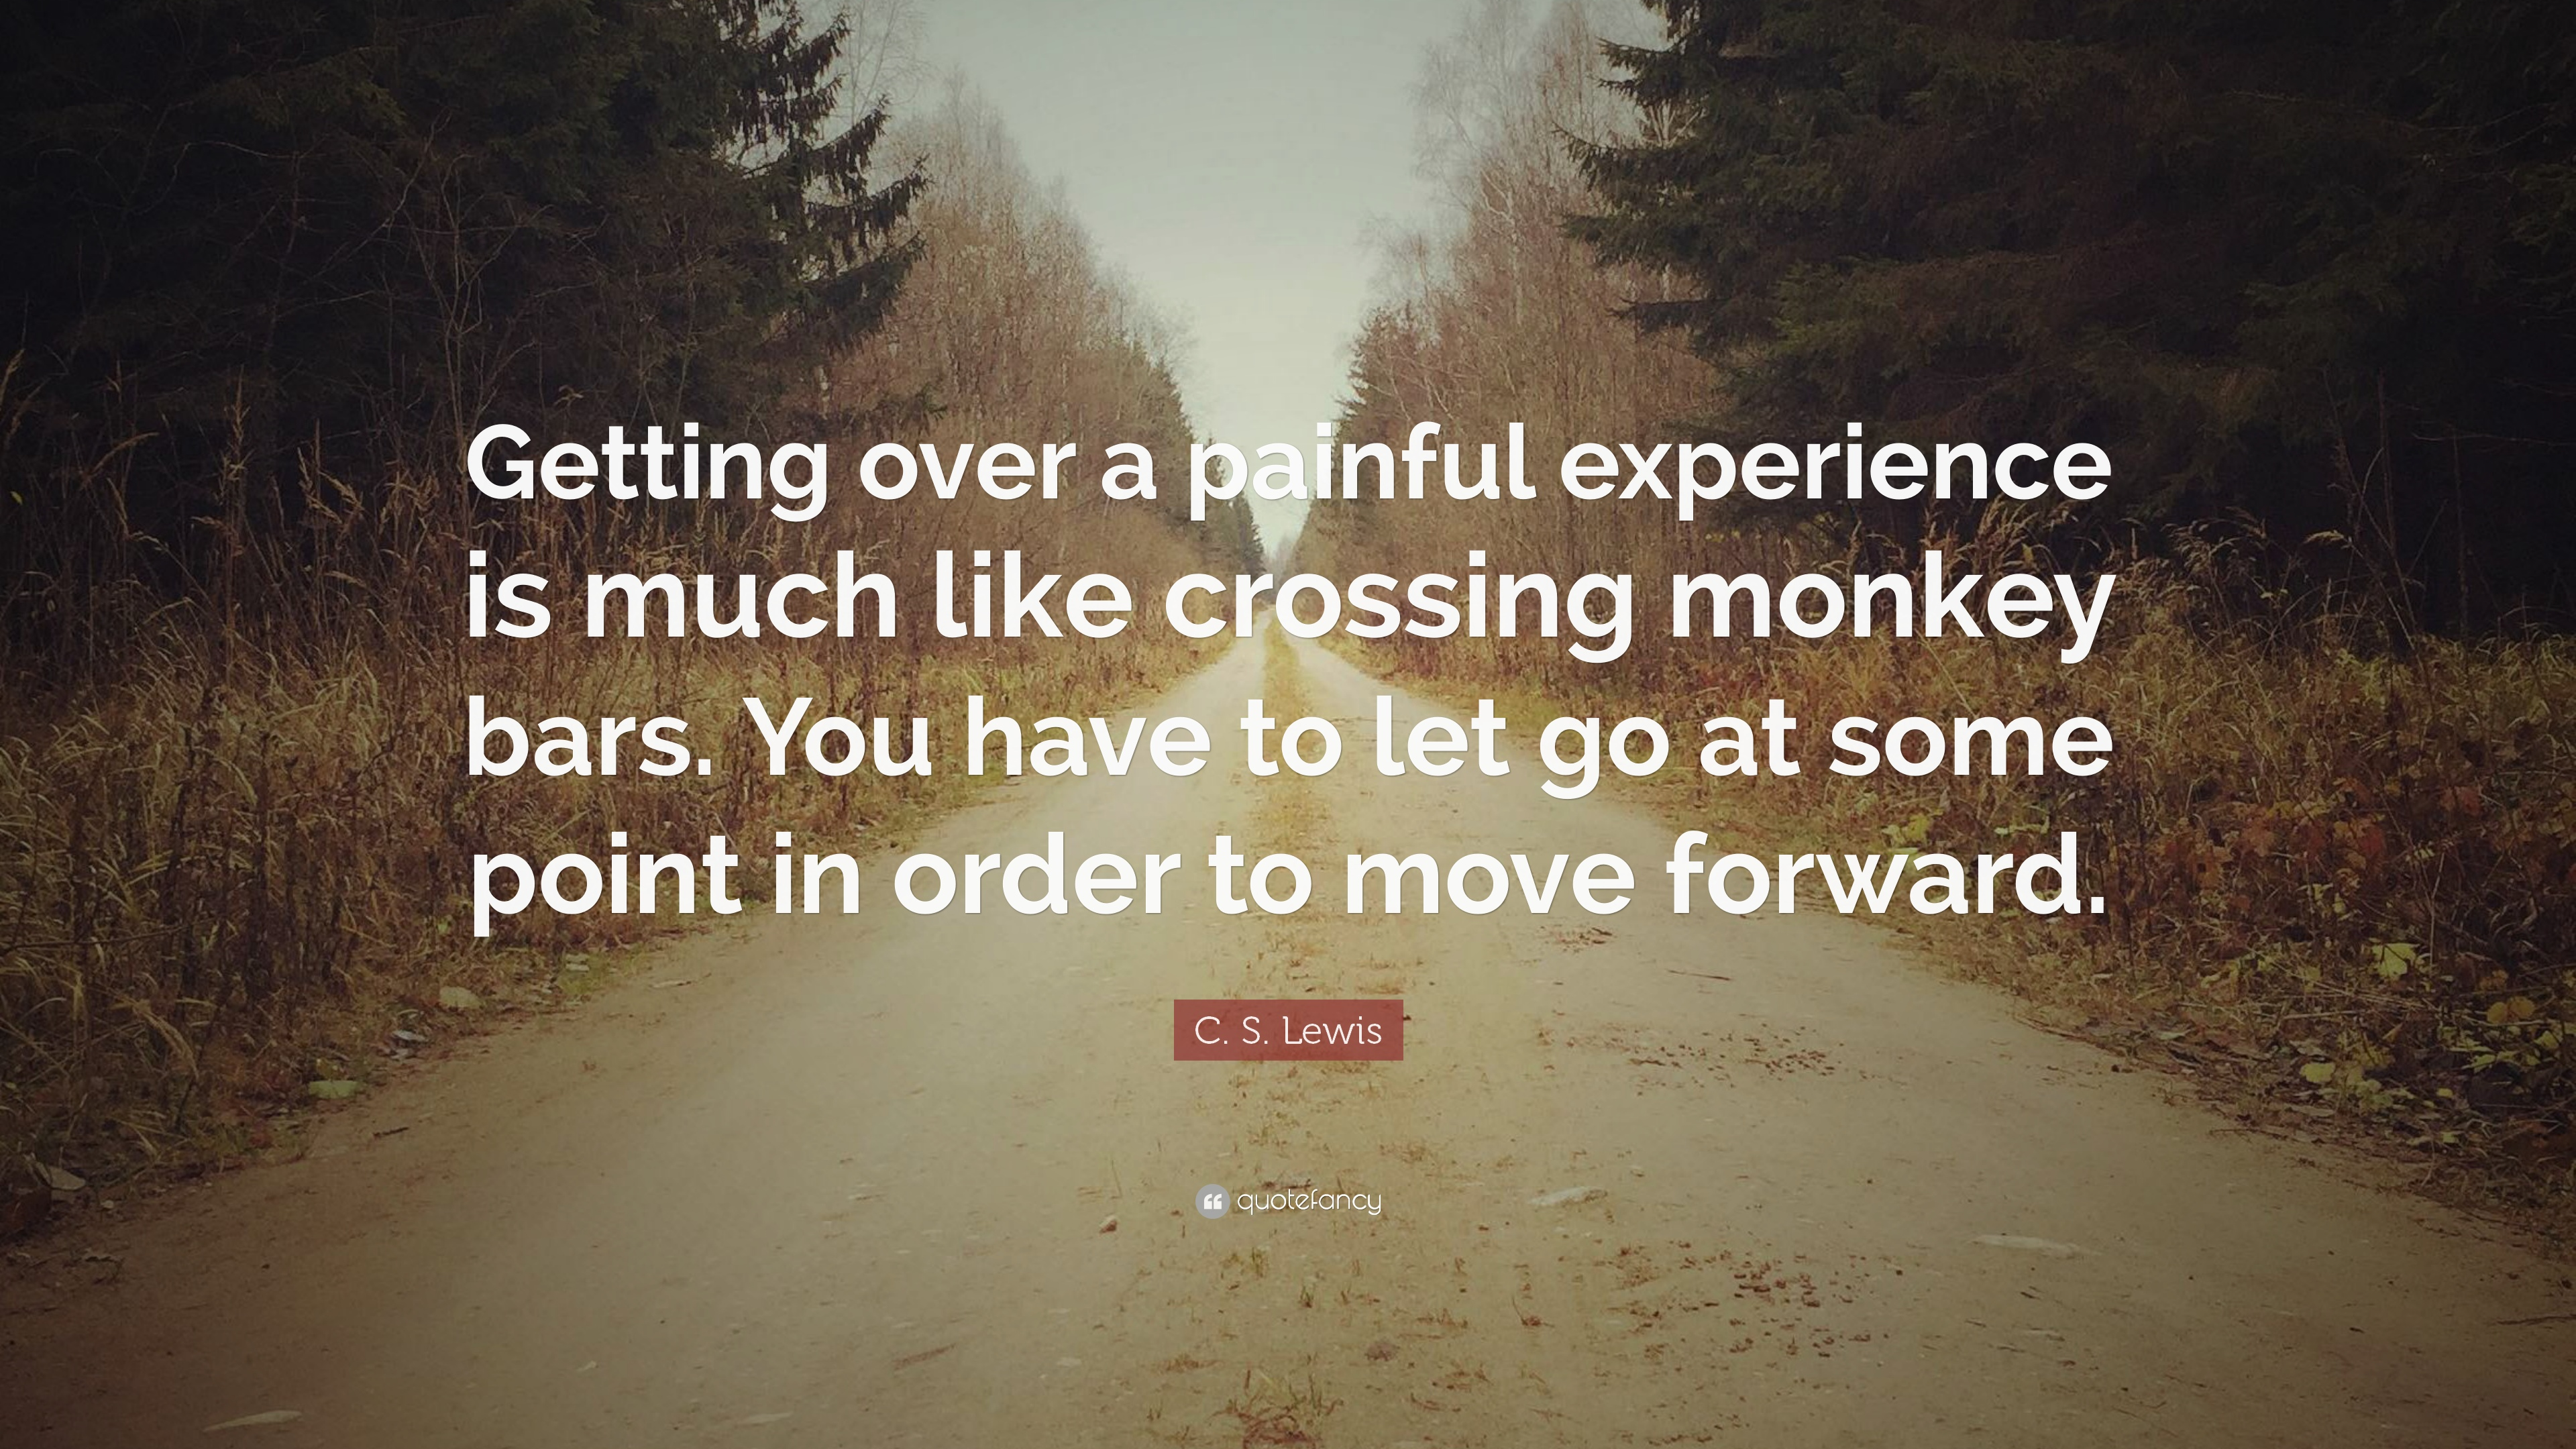 C S Lewis Quote Getting Over A Painful Experience Is Much Like